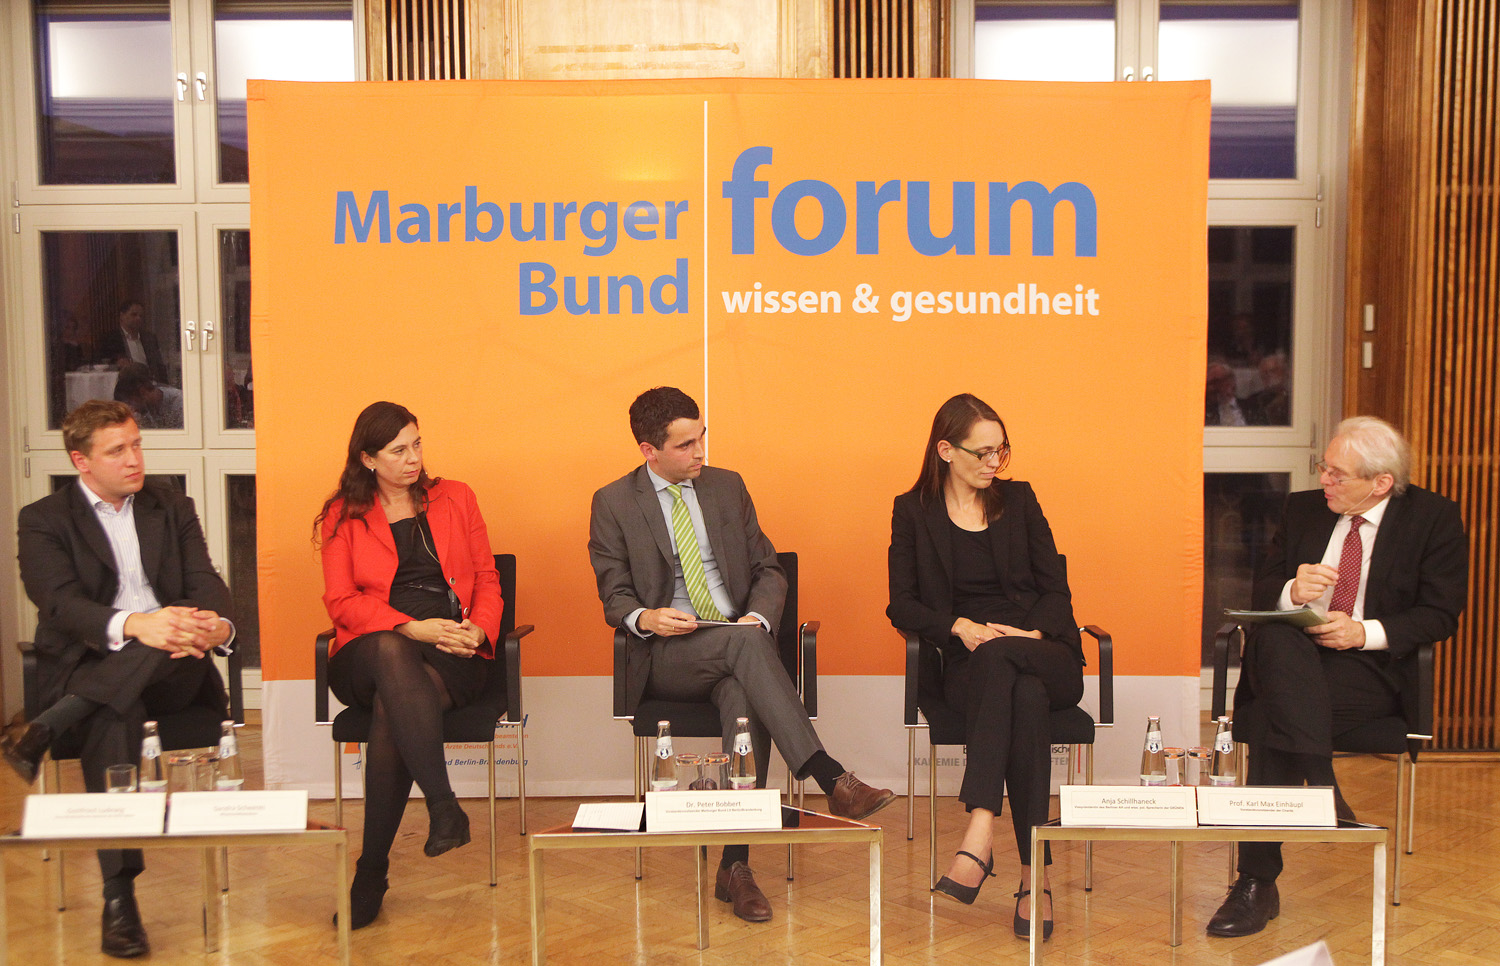 140922_Forum Marburger Bund